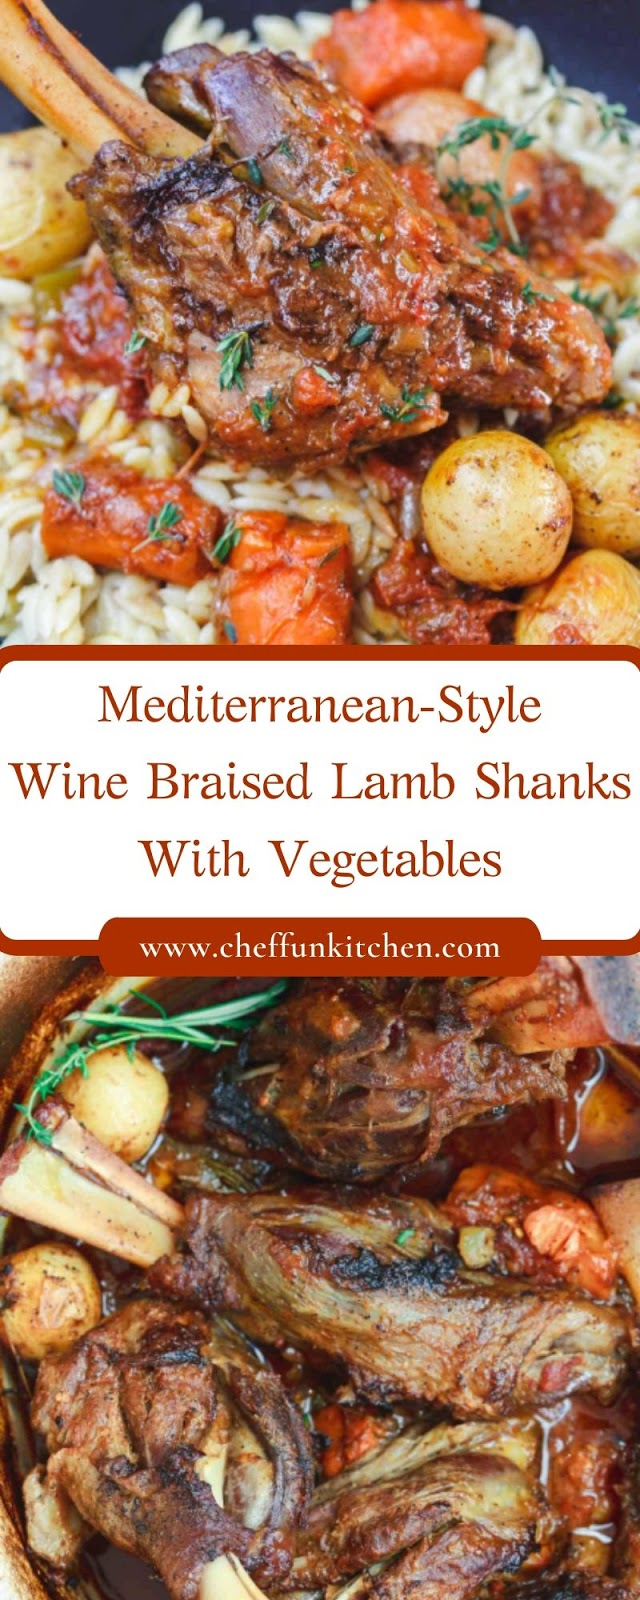 Mediterranean-Style Wine Braised Lamb Shanks With Vegetables